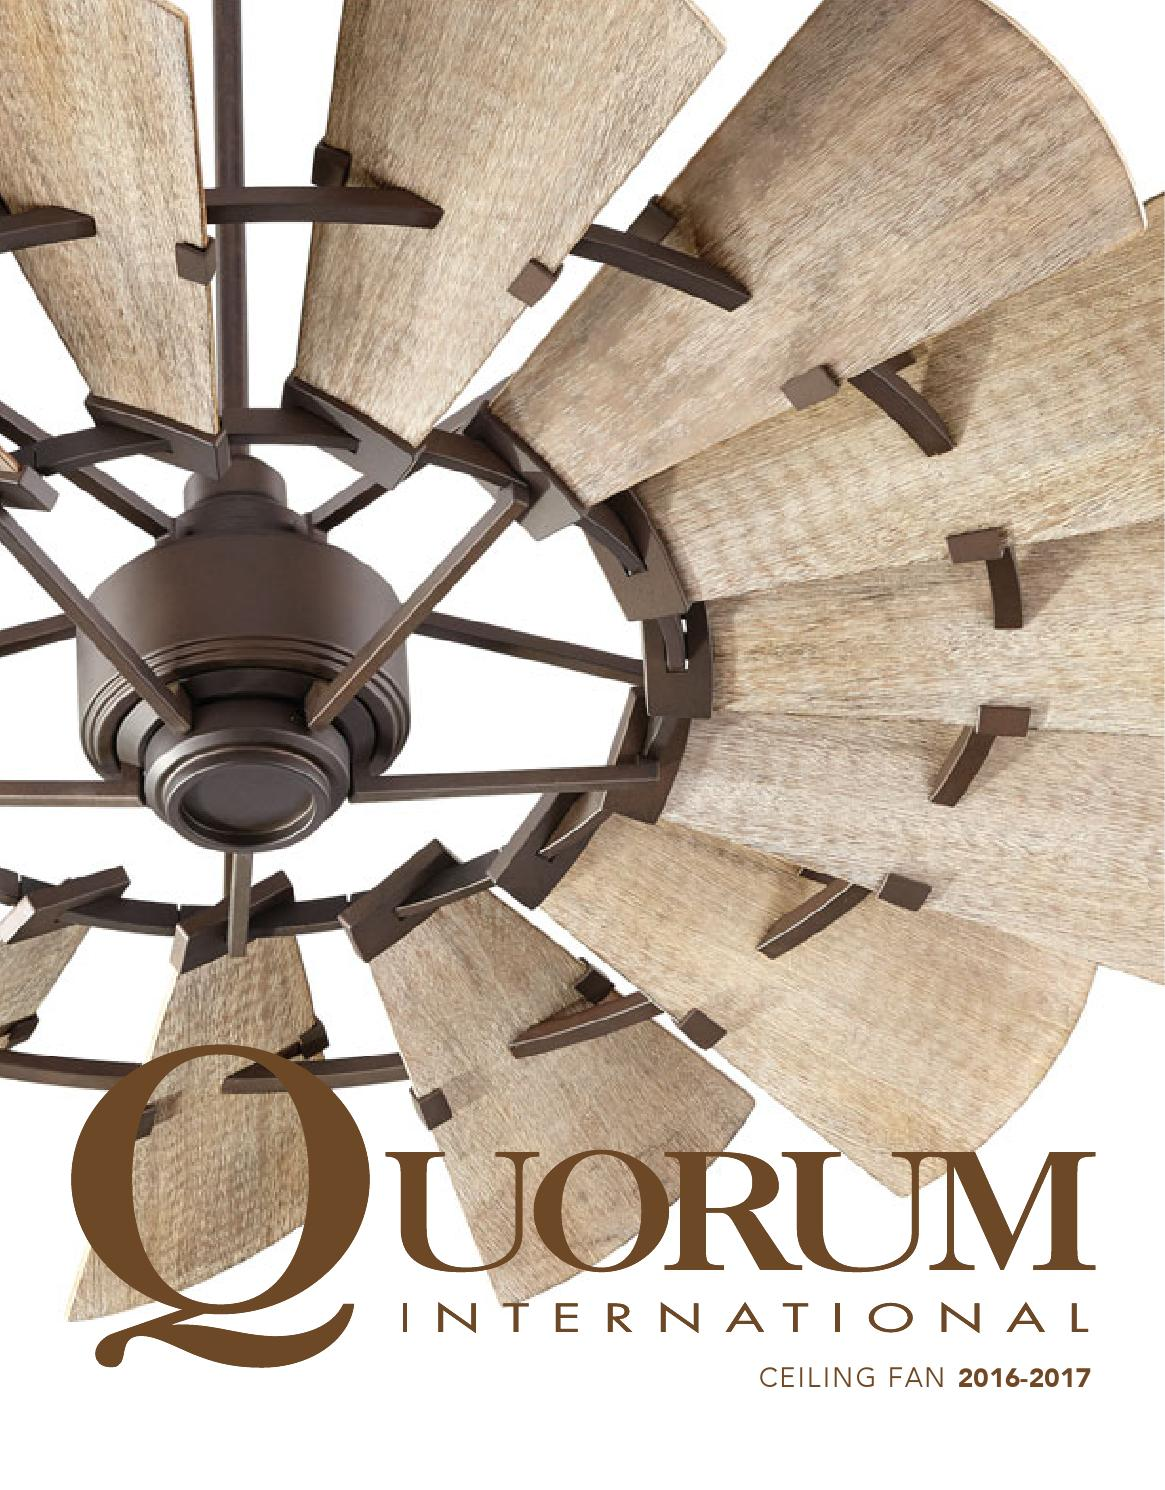 Quorum ceiling fans 2016 indoor ceiling fans 2016 fans by TFG - issuu